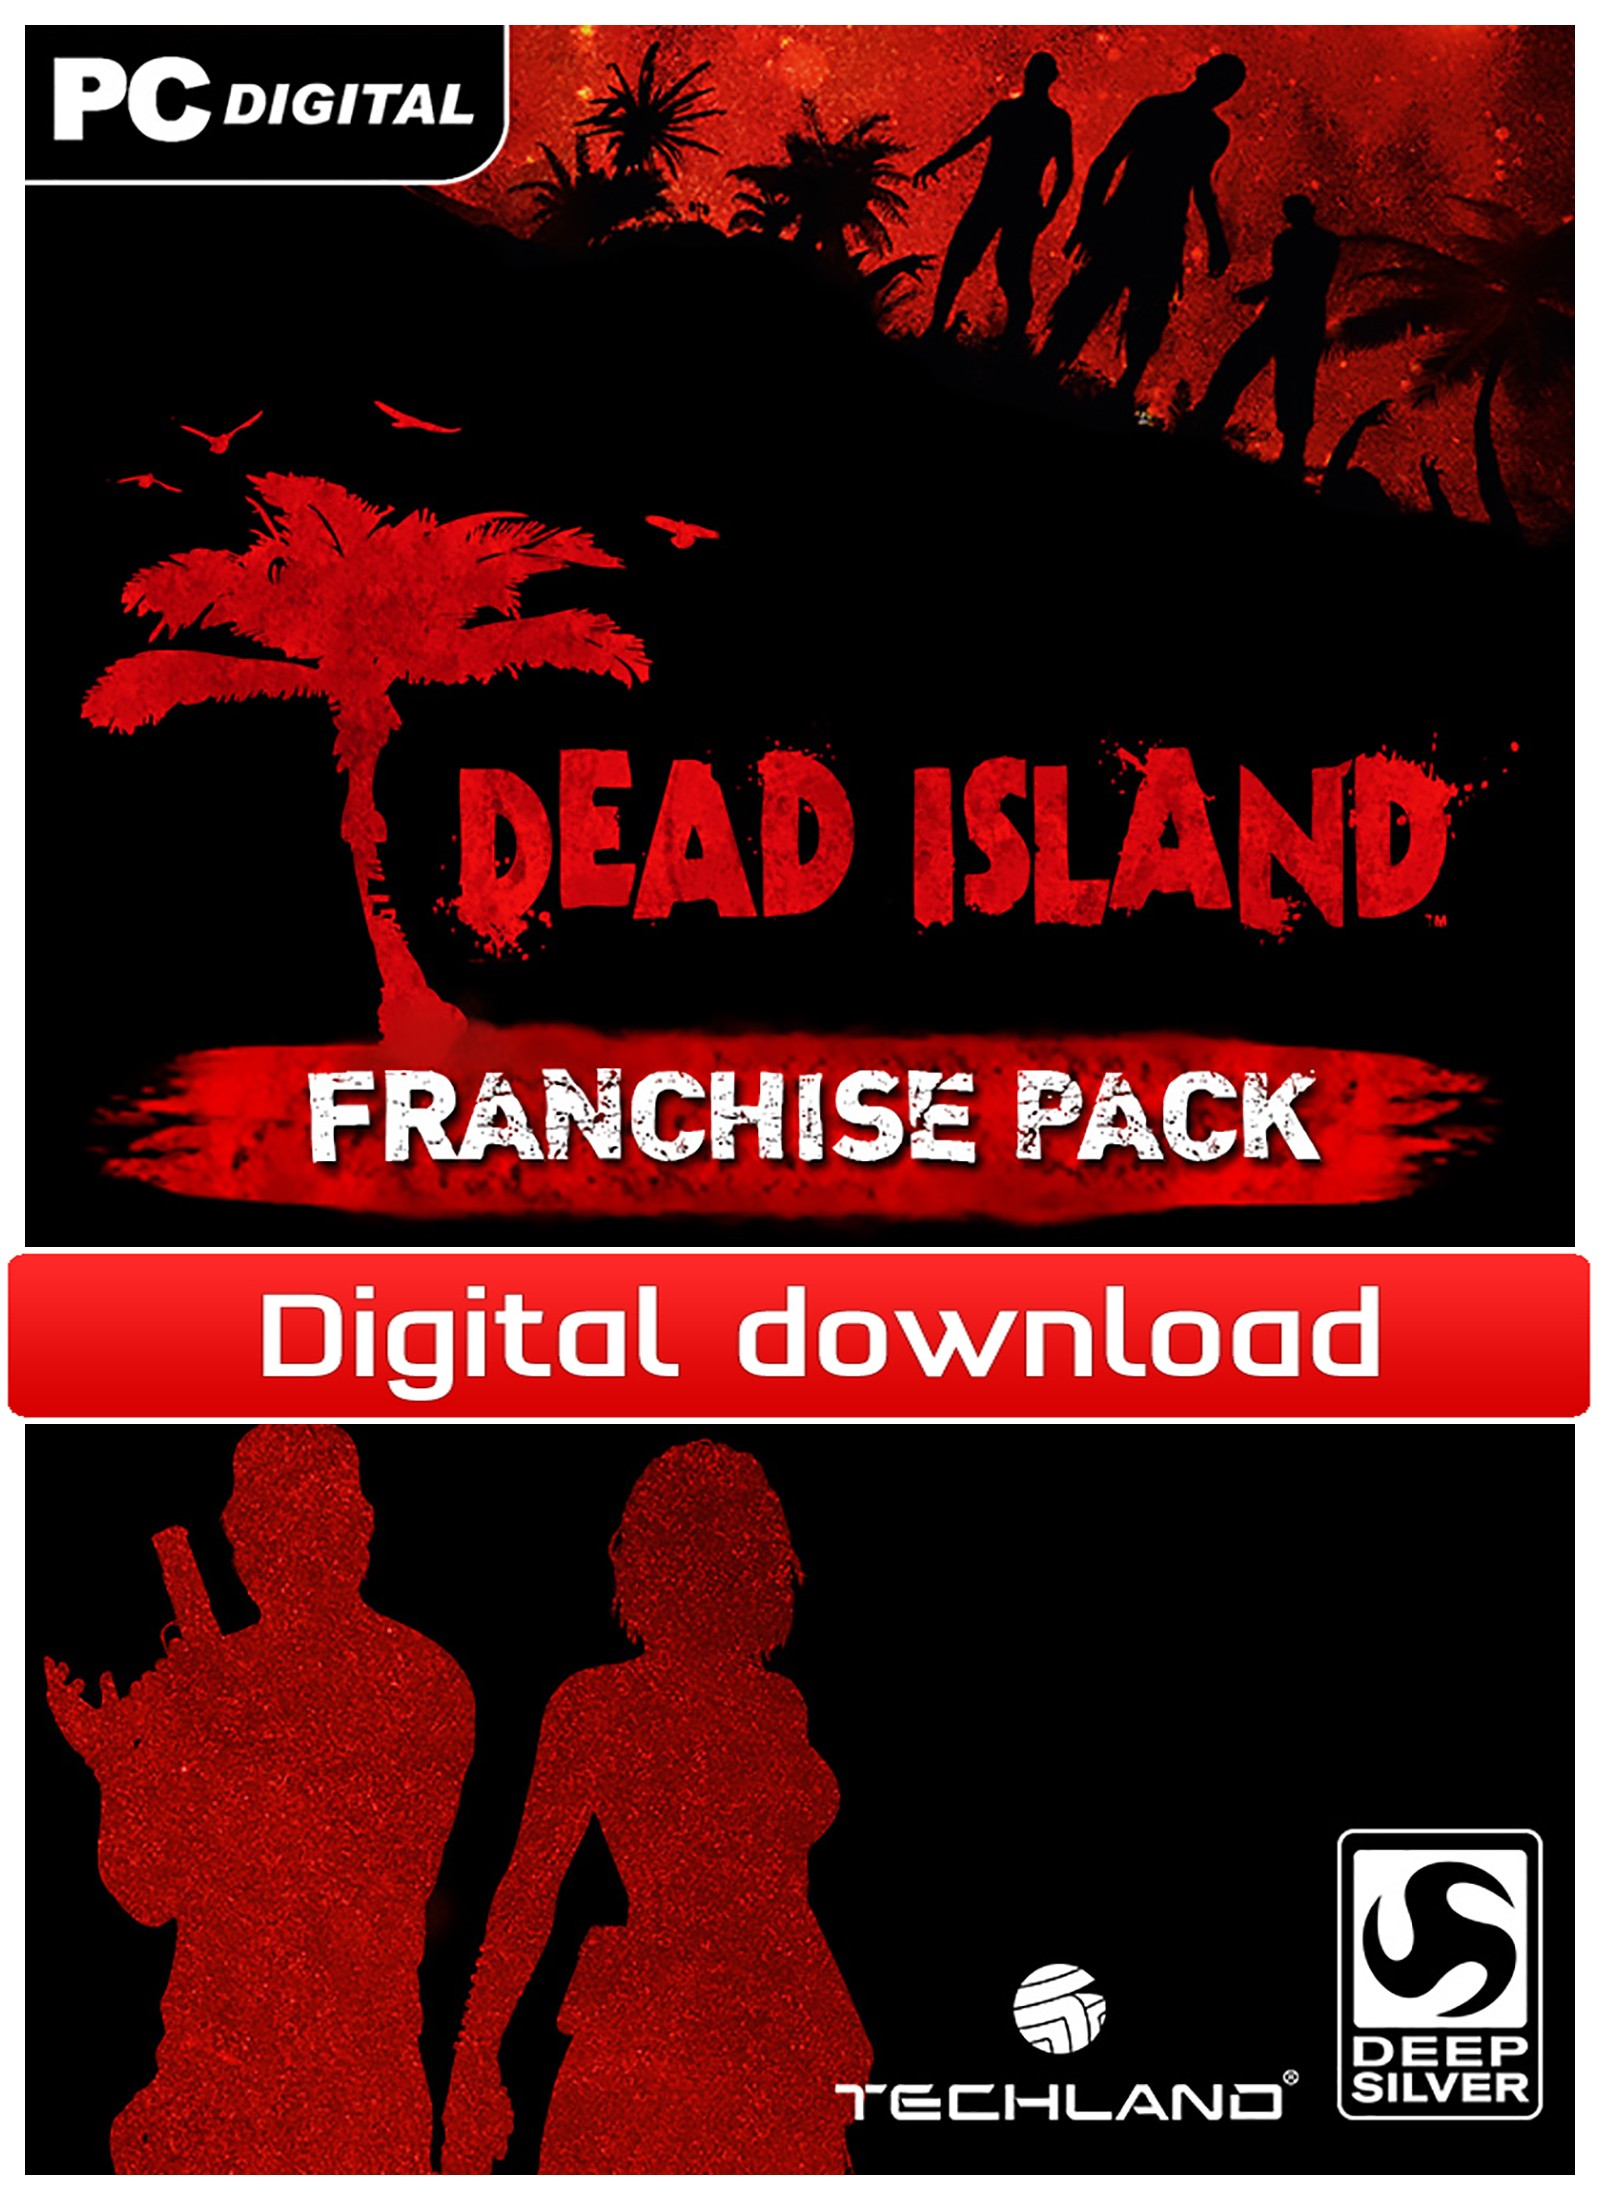 34262 : Dead Island Franchise Pack (PC nedlastning)